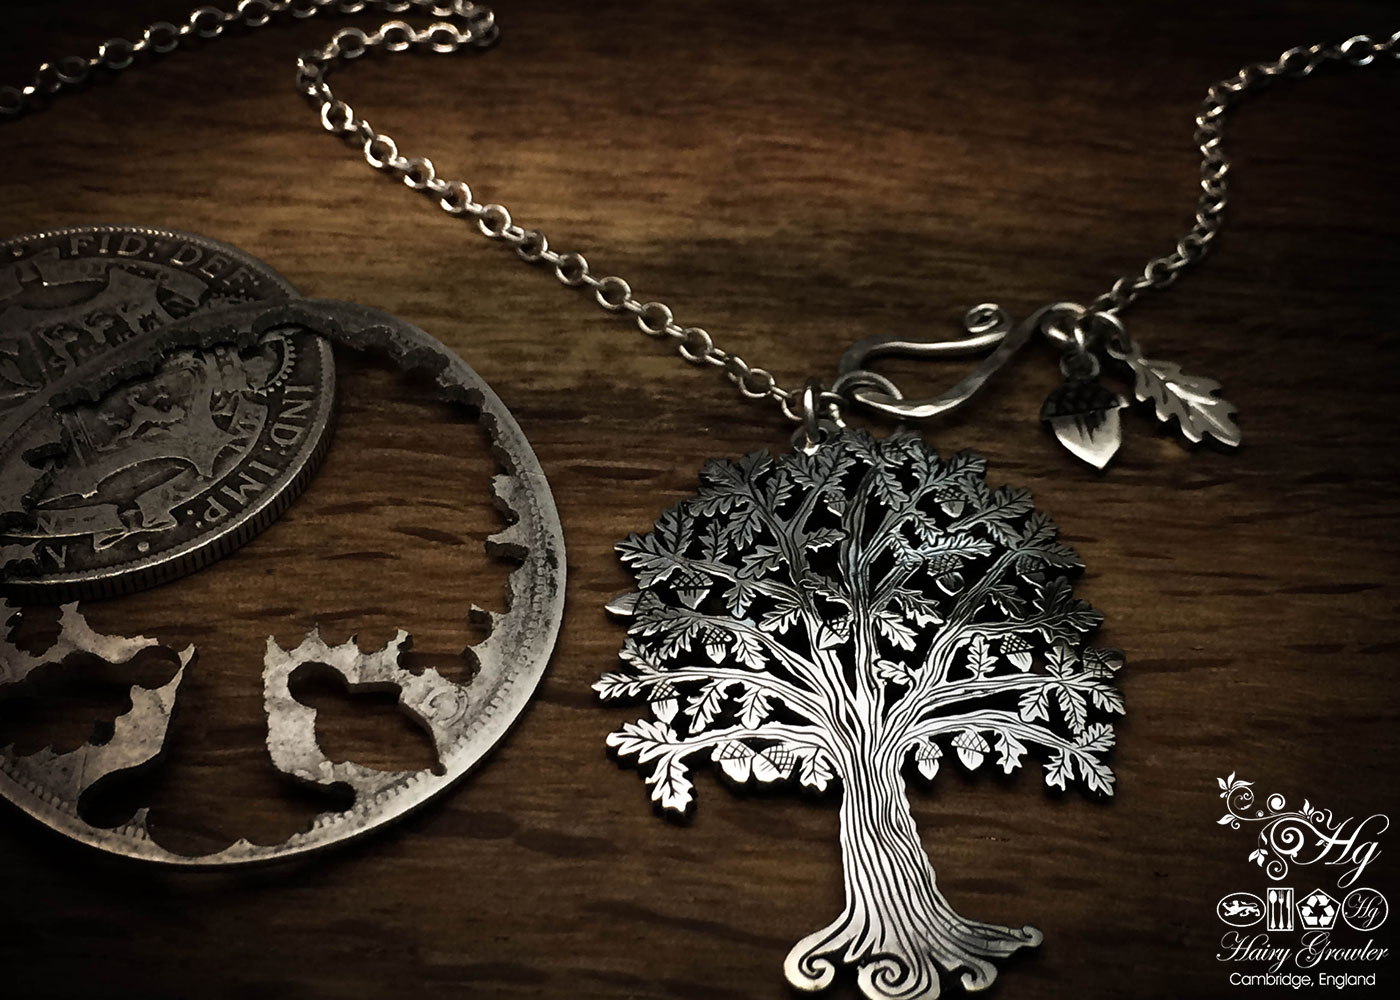 Handcrafted and recycled silver Oak Tree-of-Life necklace made from a British silver coin